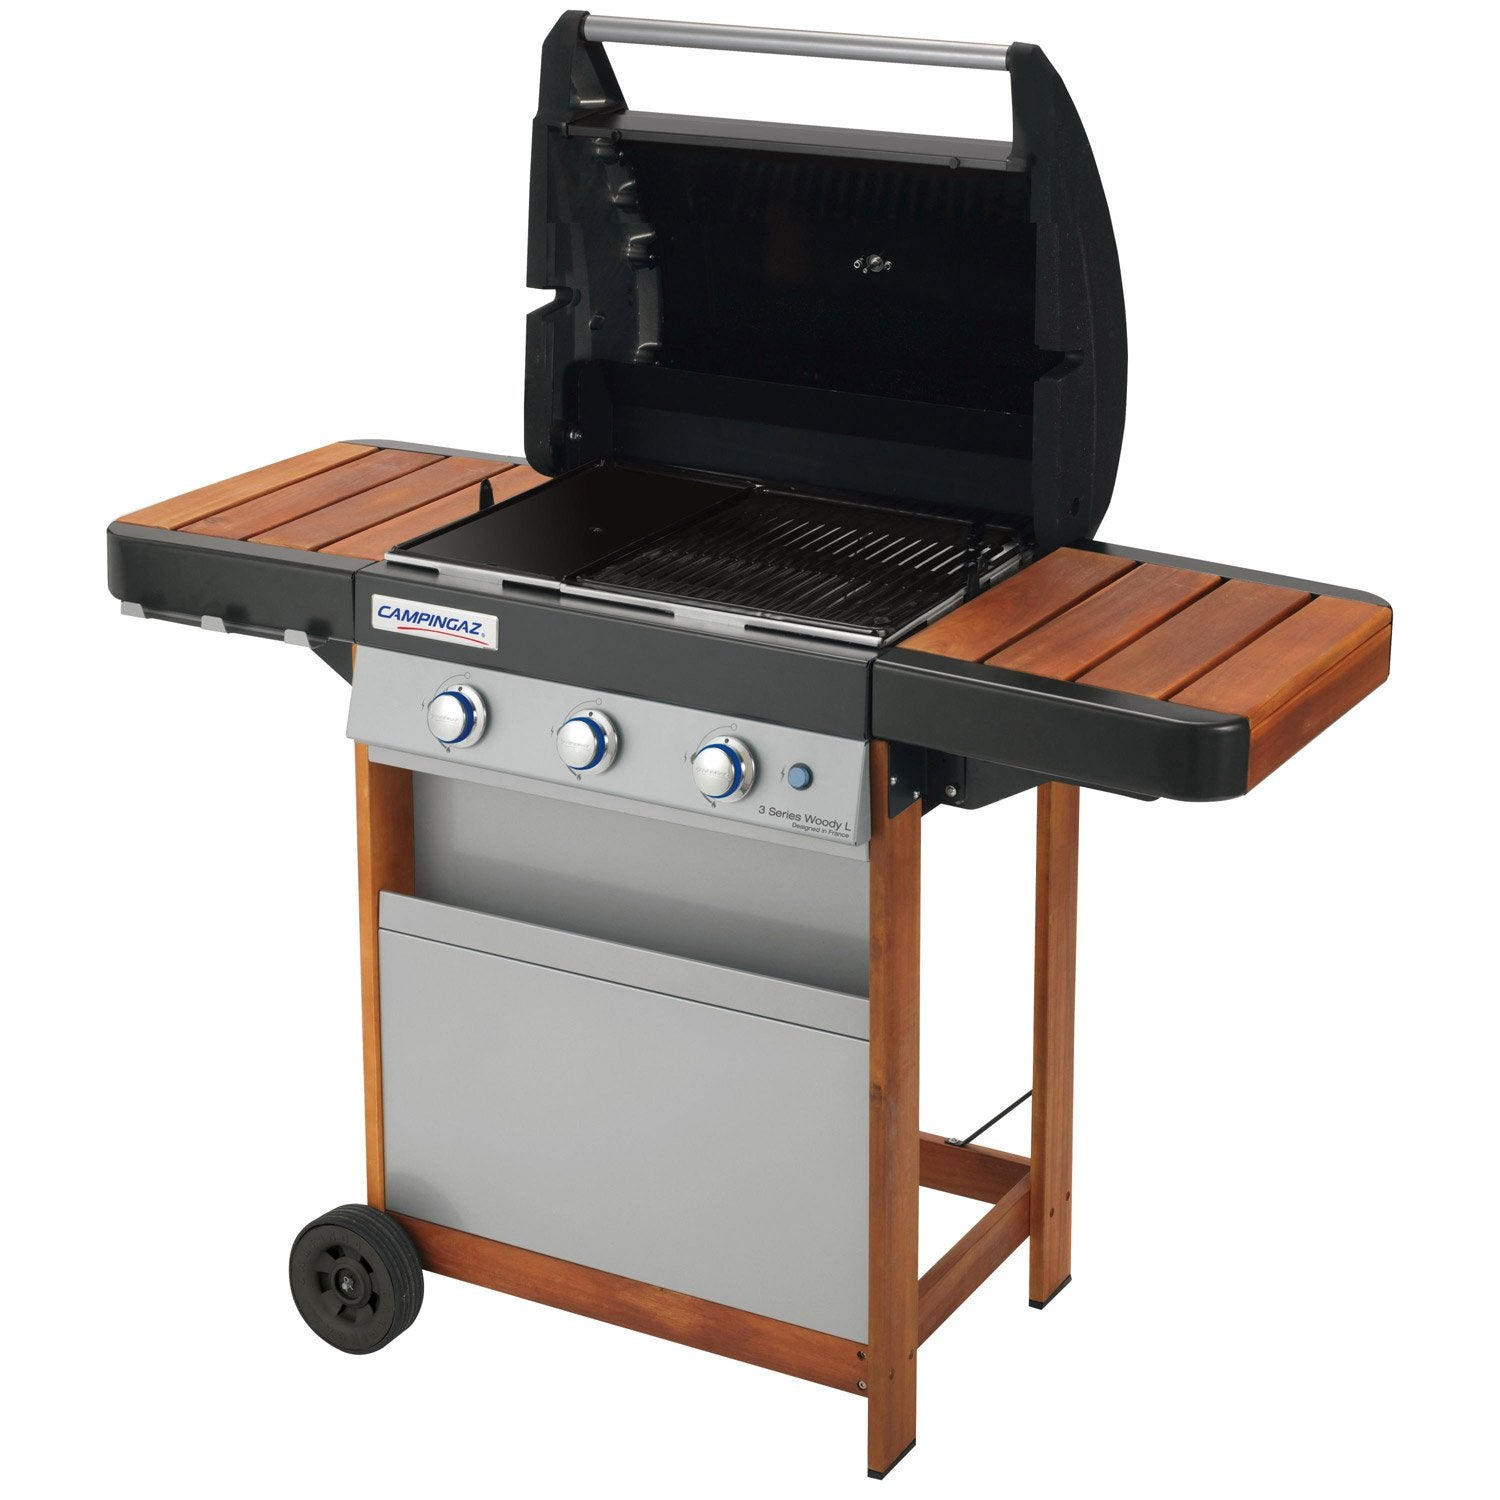 barbecue a gaz castorama barbecue barbecue gaz castorama rouen barbecue barbecue gaz castorama. Black Bedroom Furniture Sets. Home Design Ideas